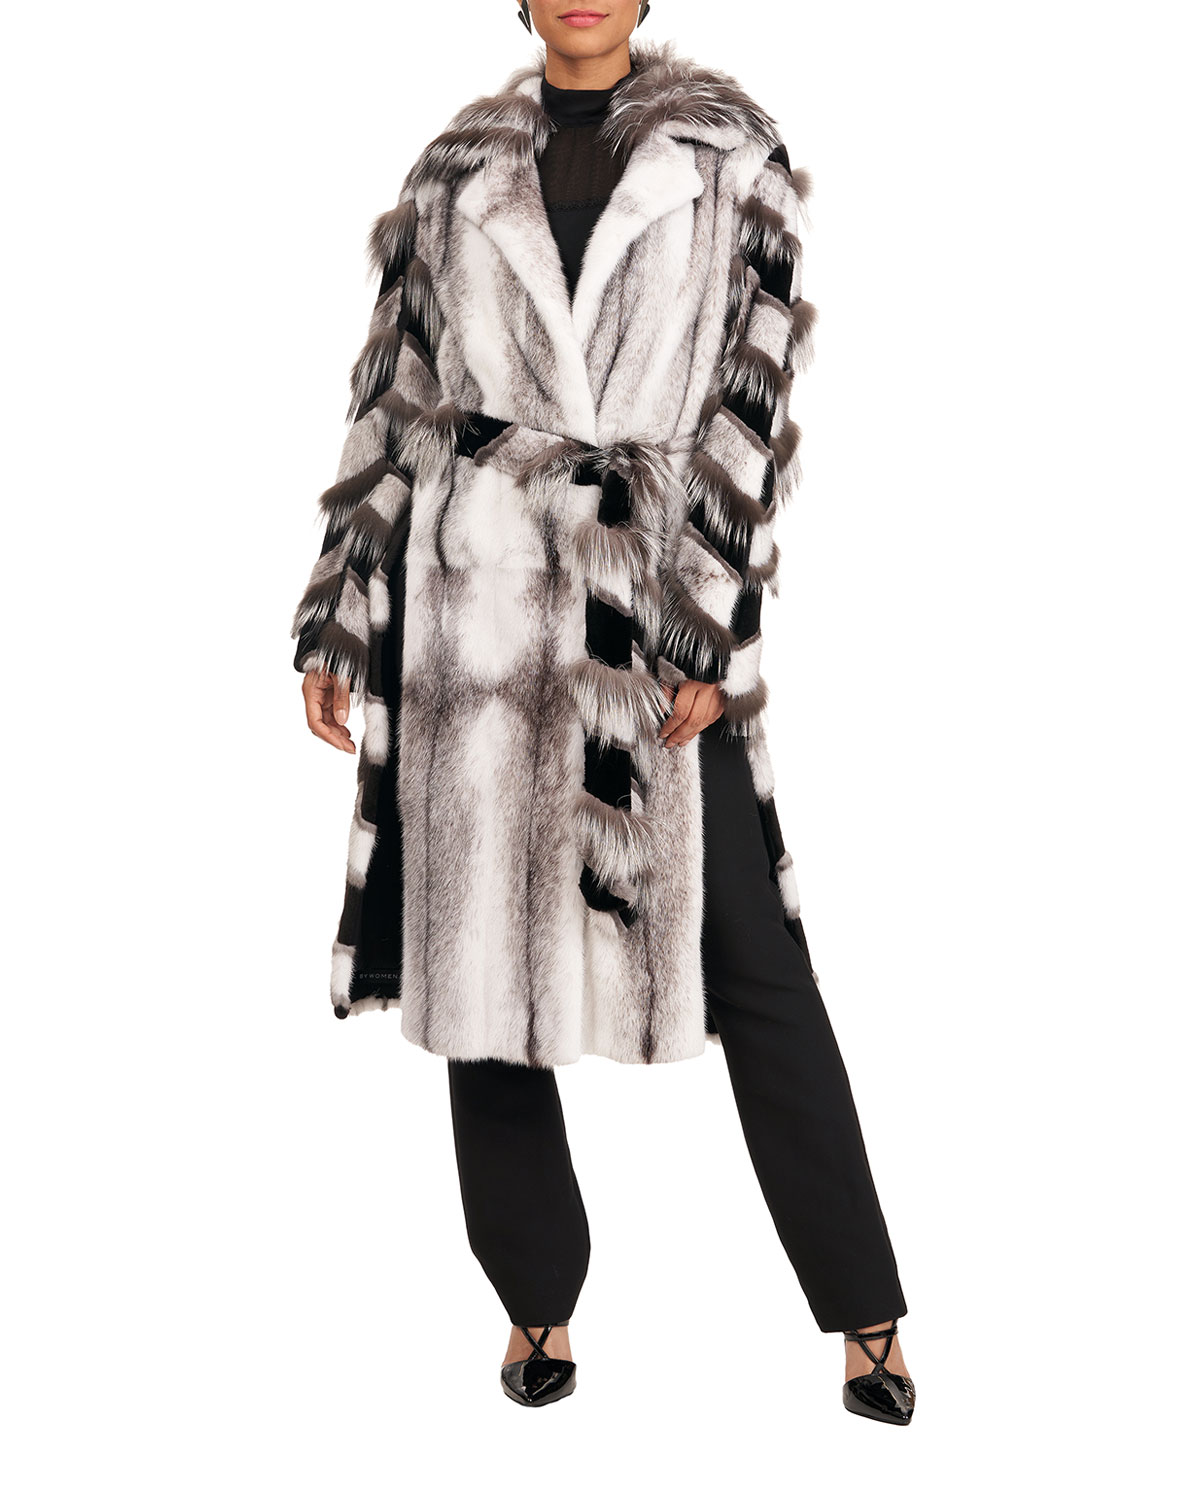 Burnett Mink Short Coat w/ Fox Intarsia Sleeves